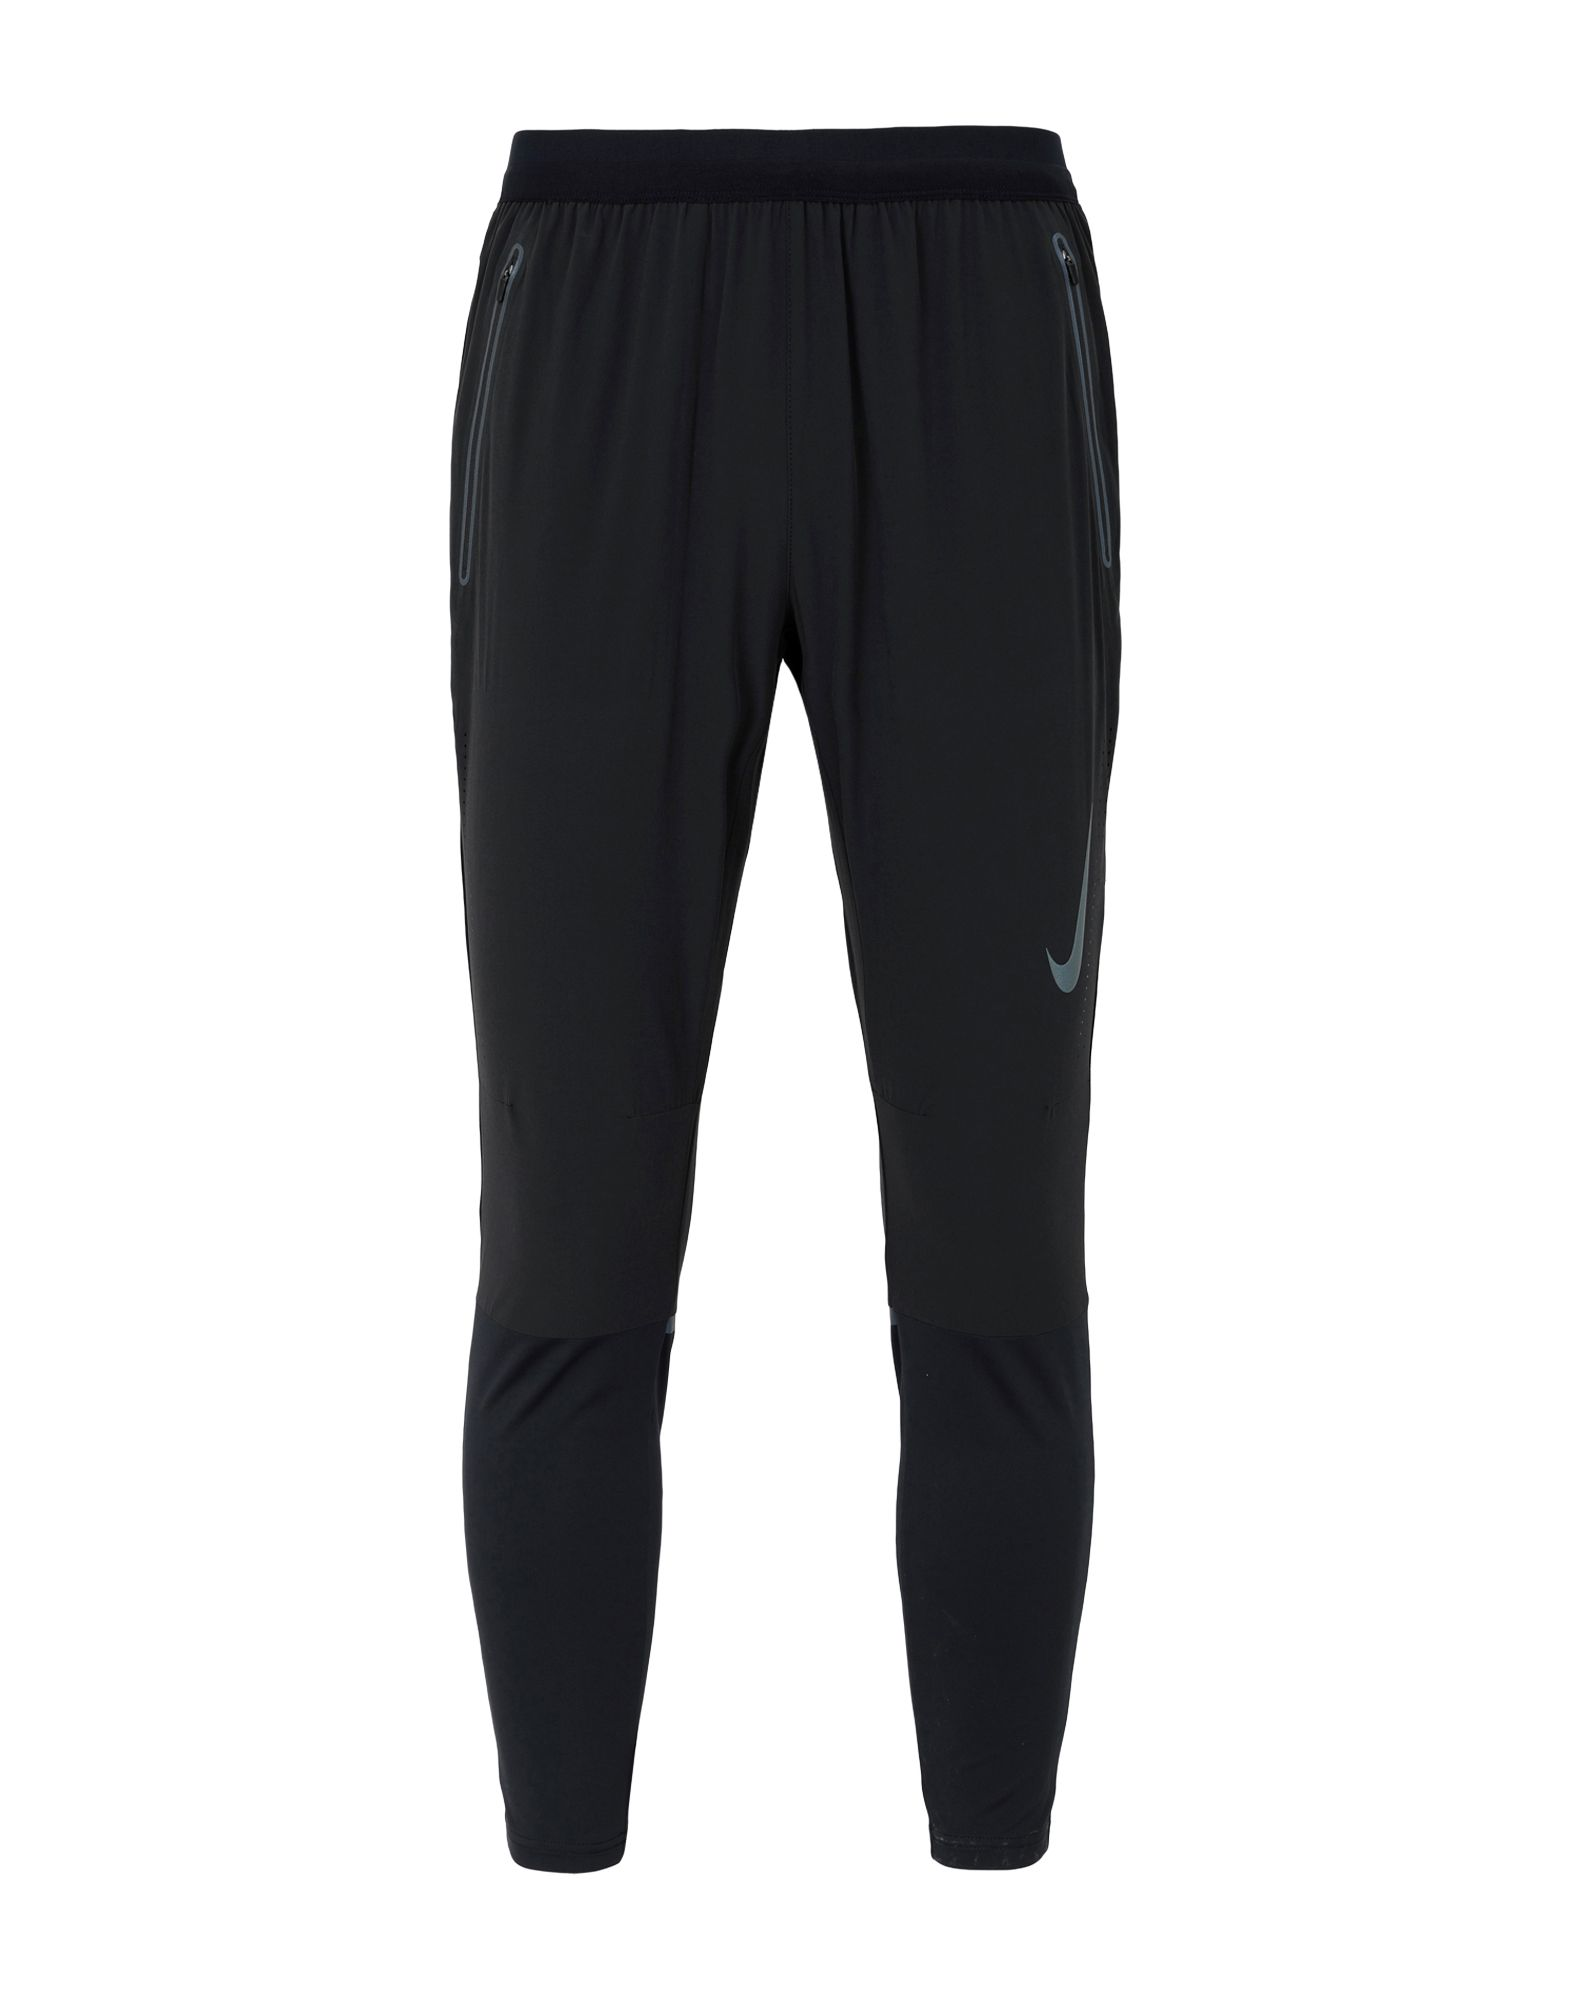 Pantalone Nike Swift Run Pant - uomo - 13243335VJ 13243335VJ